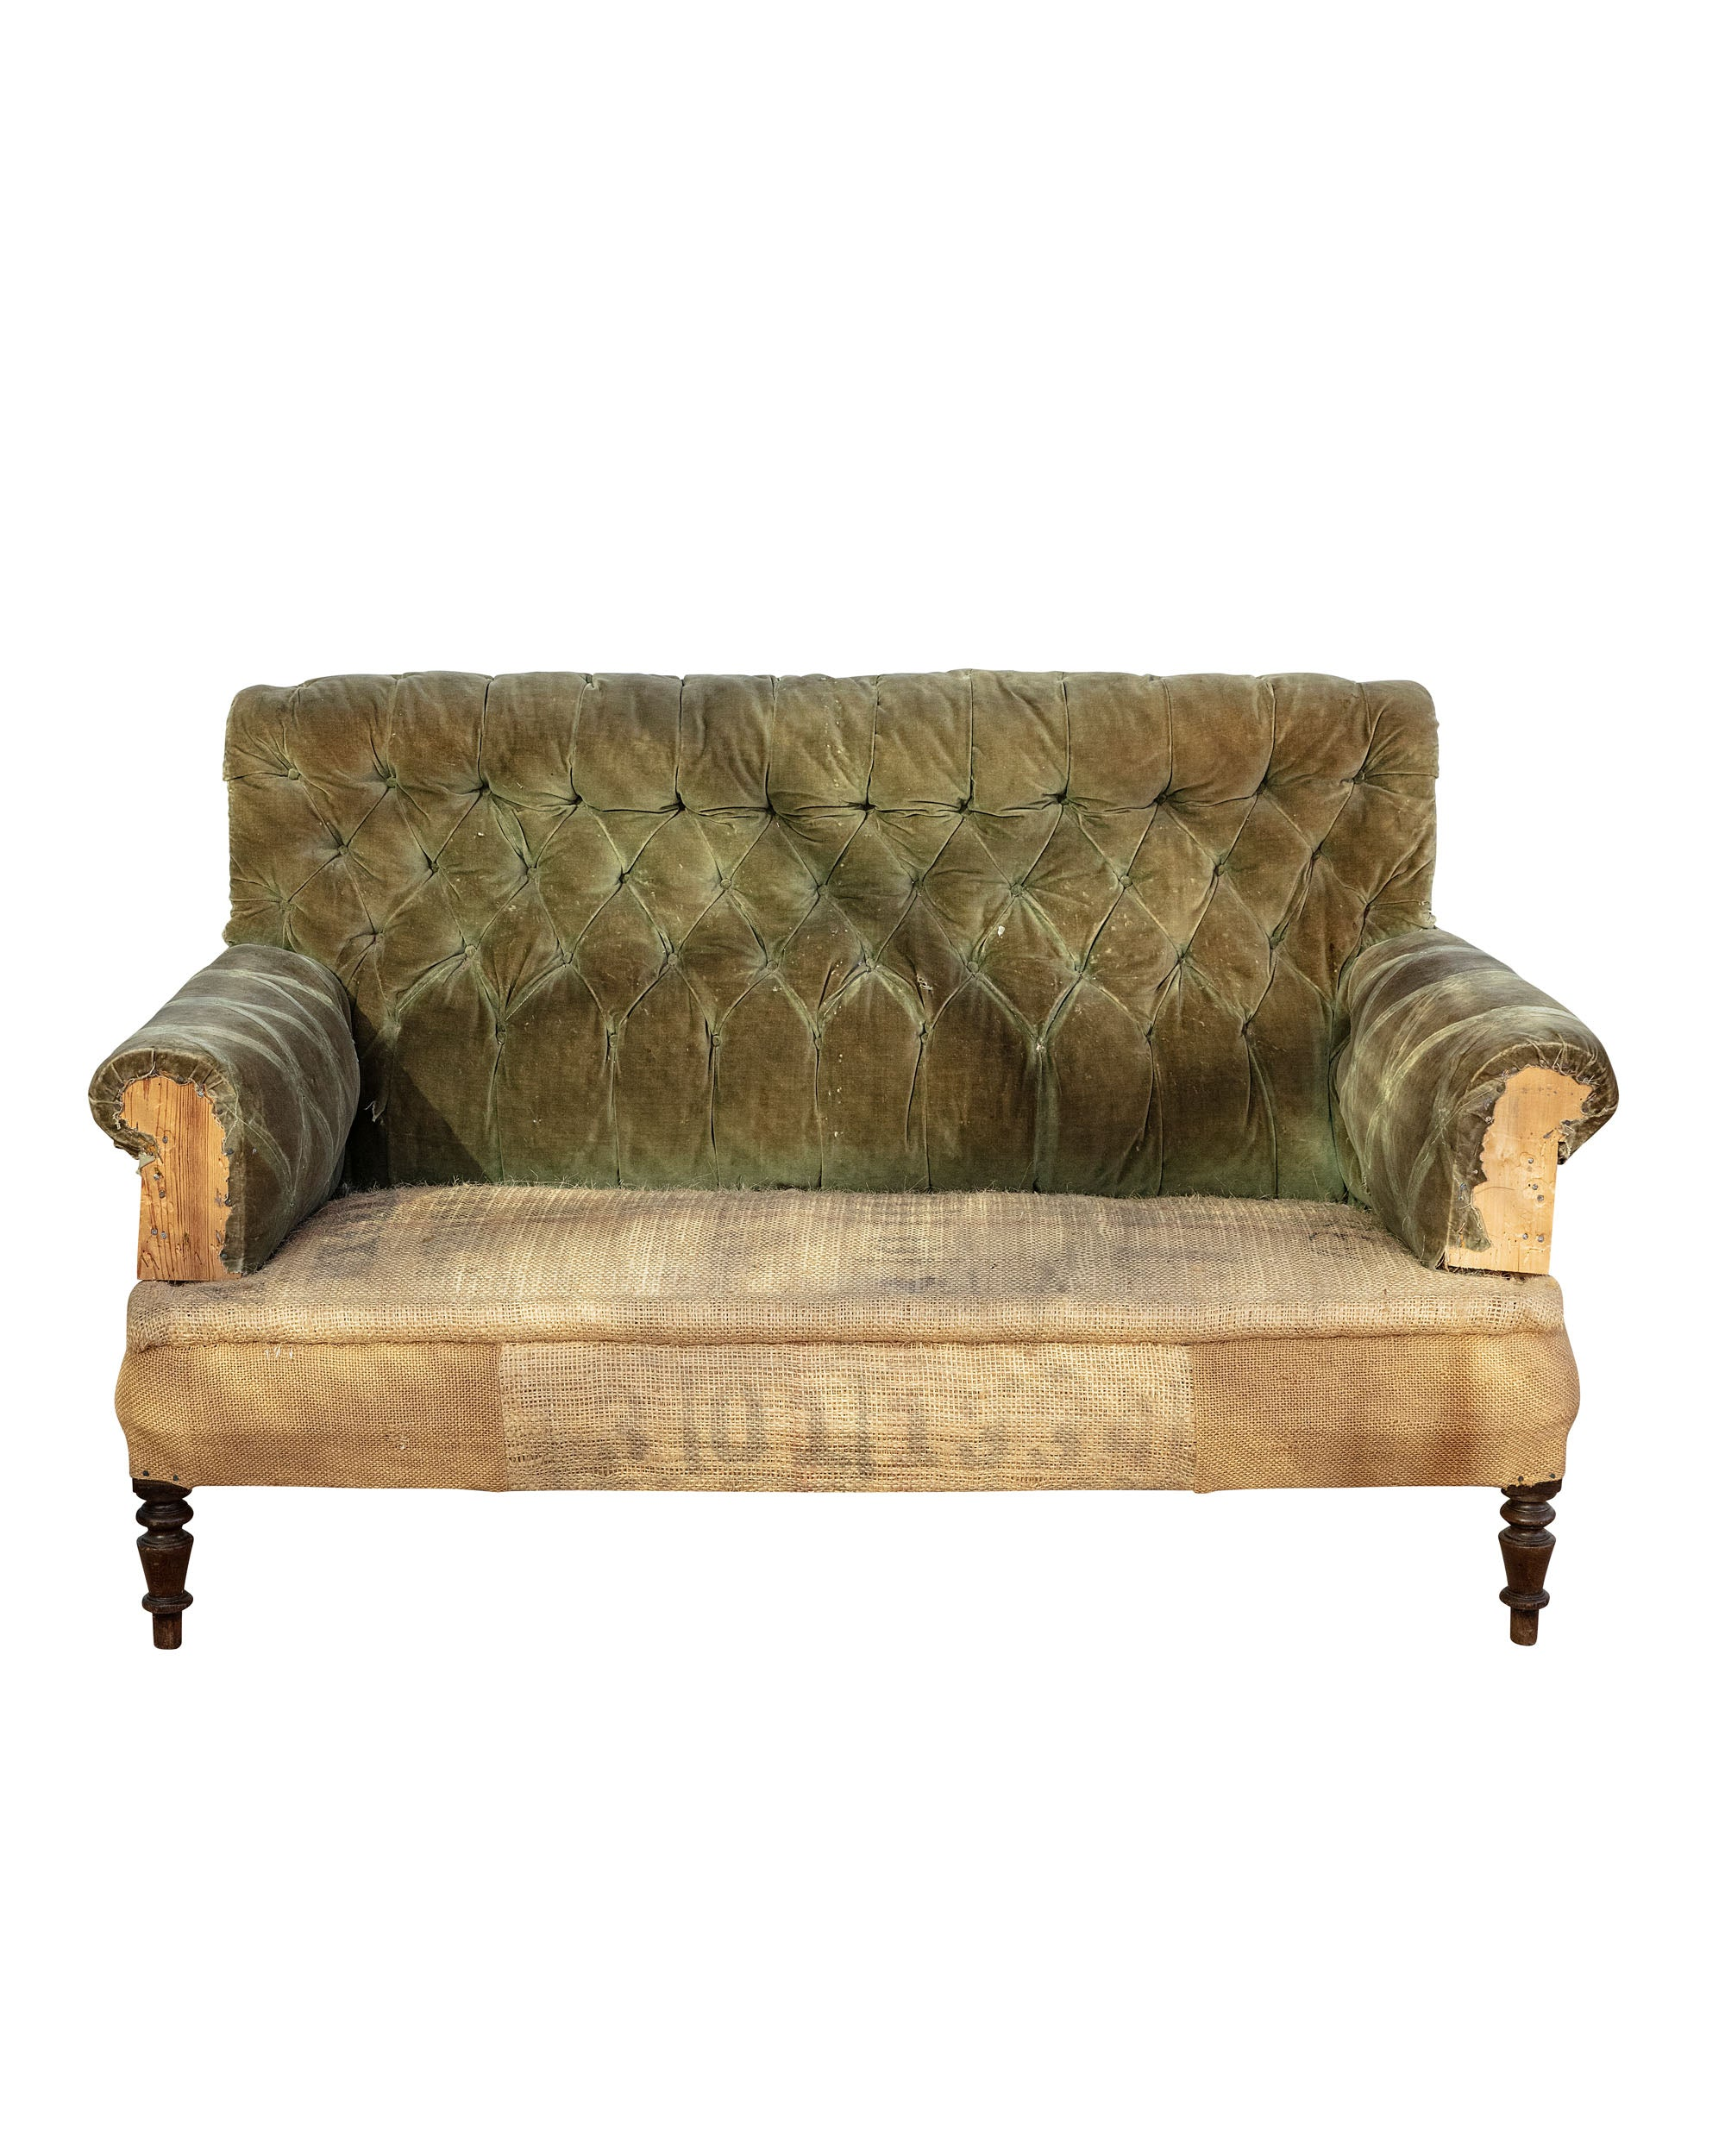 Sofa with green velvet backrest and hessian seat with wooden structure